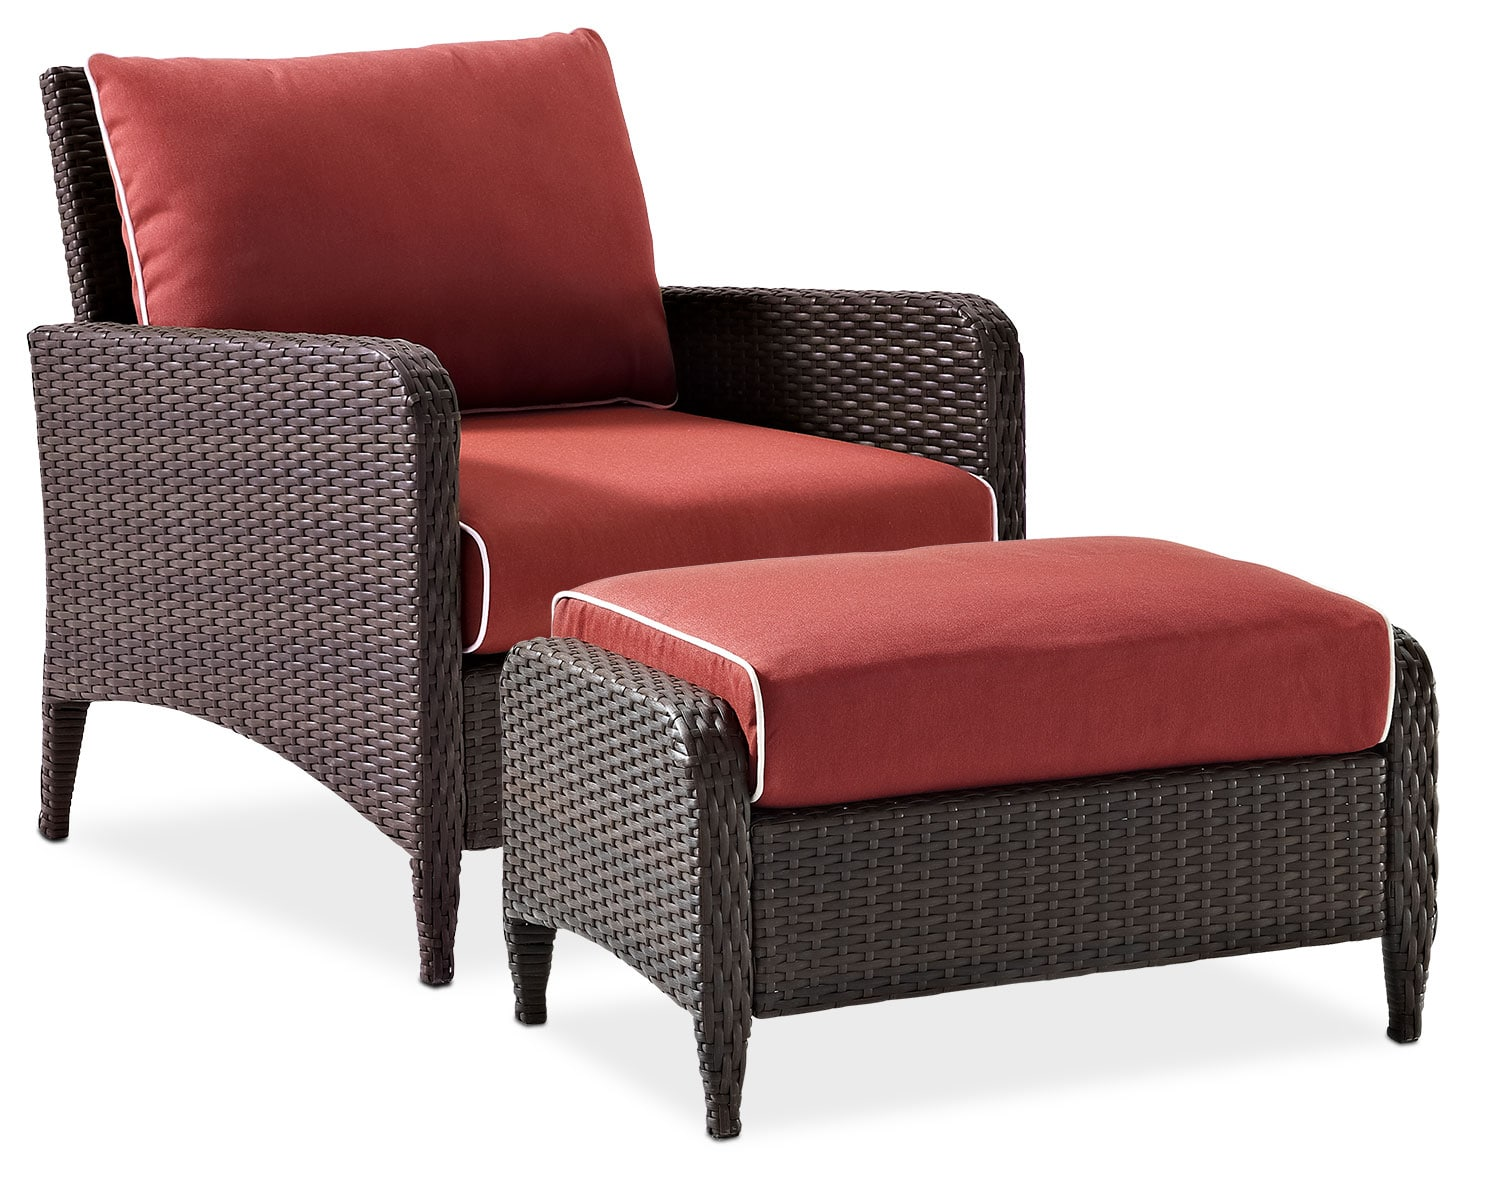 Outdoor Furniture - Corona Outdoor Chair and Ottoman Set - Sangria